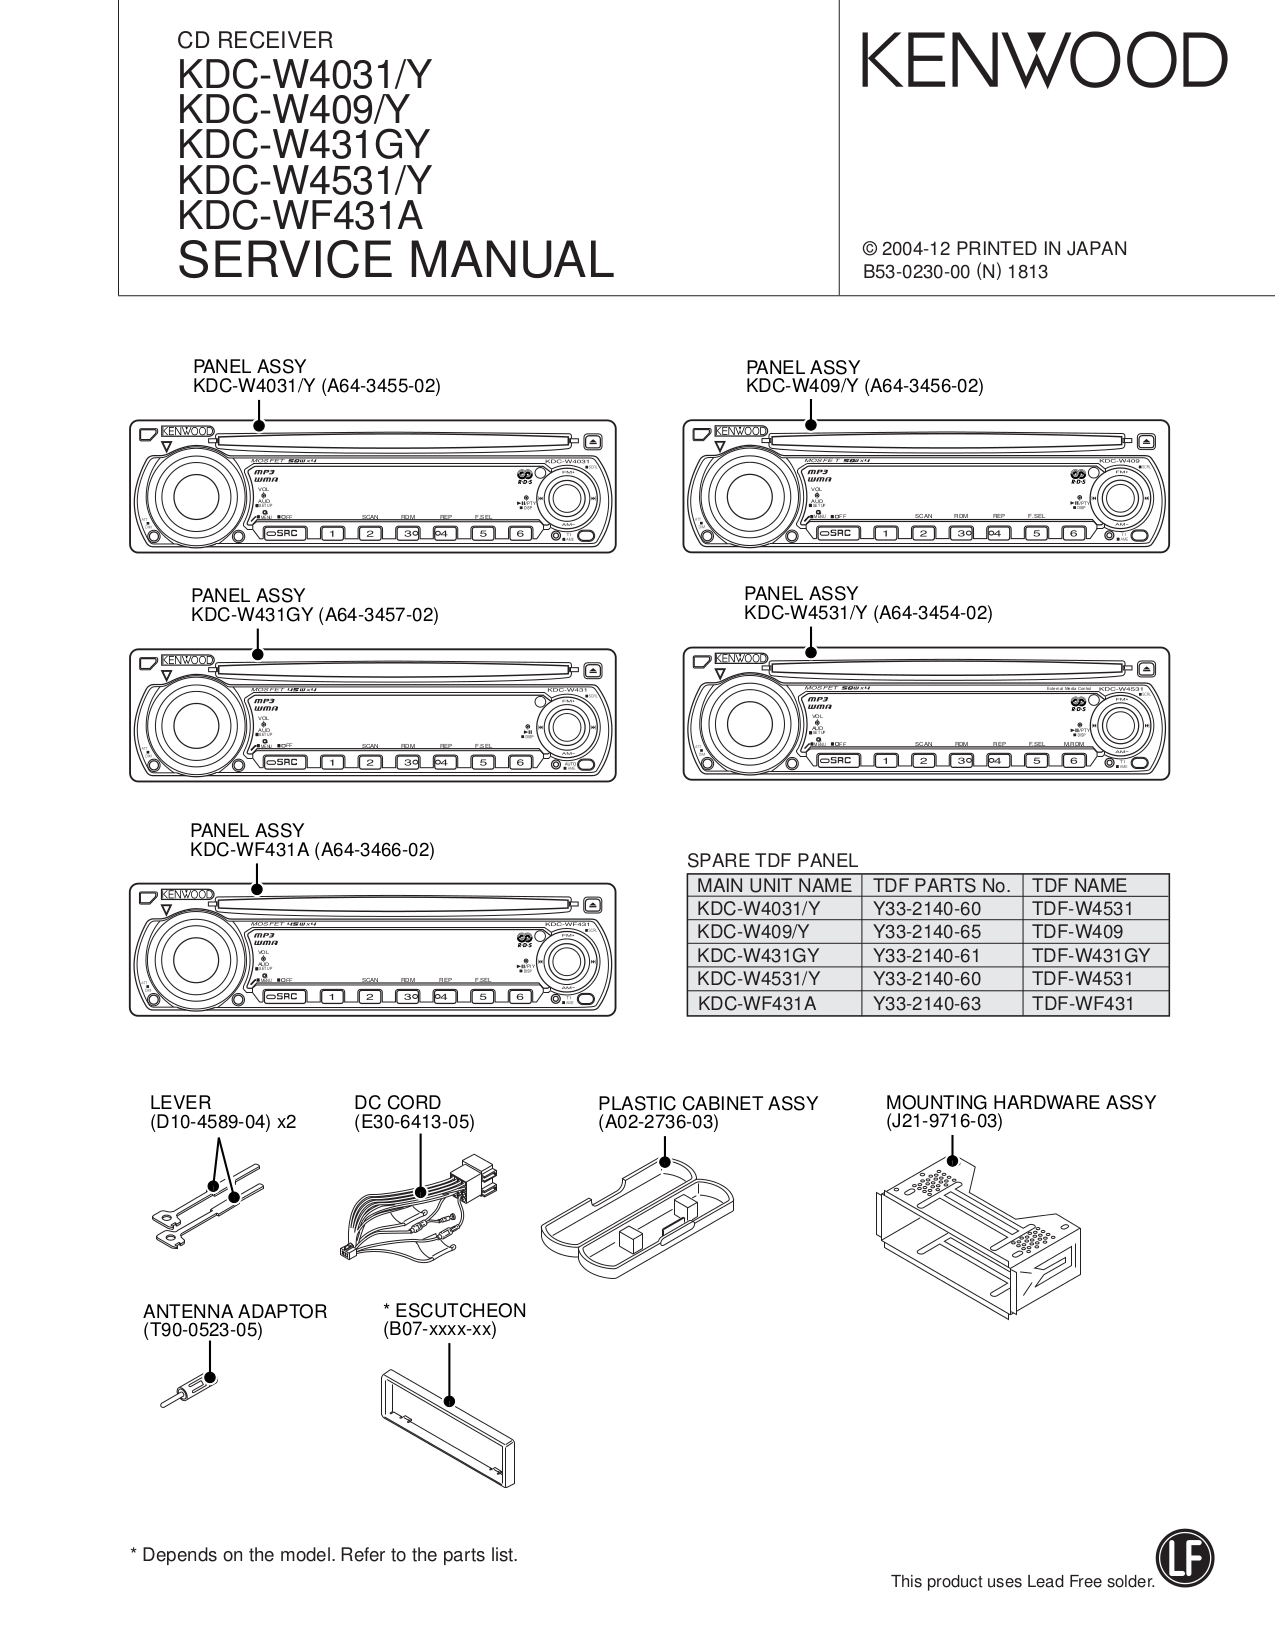 KDC W4031_W409_W431GY_W4531_WF431A.pdf 0 kenwood kdc 135 wiring diagram kenwood harness diagram \u2022 wiring Kenwood DDX470 Wiring Harness Diagram at crackthecode.co